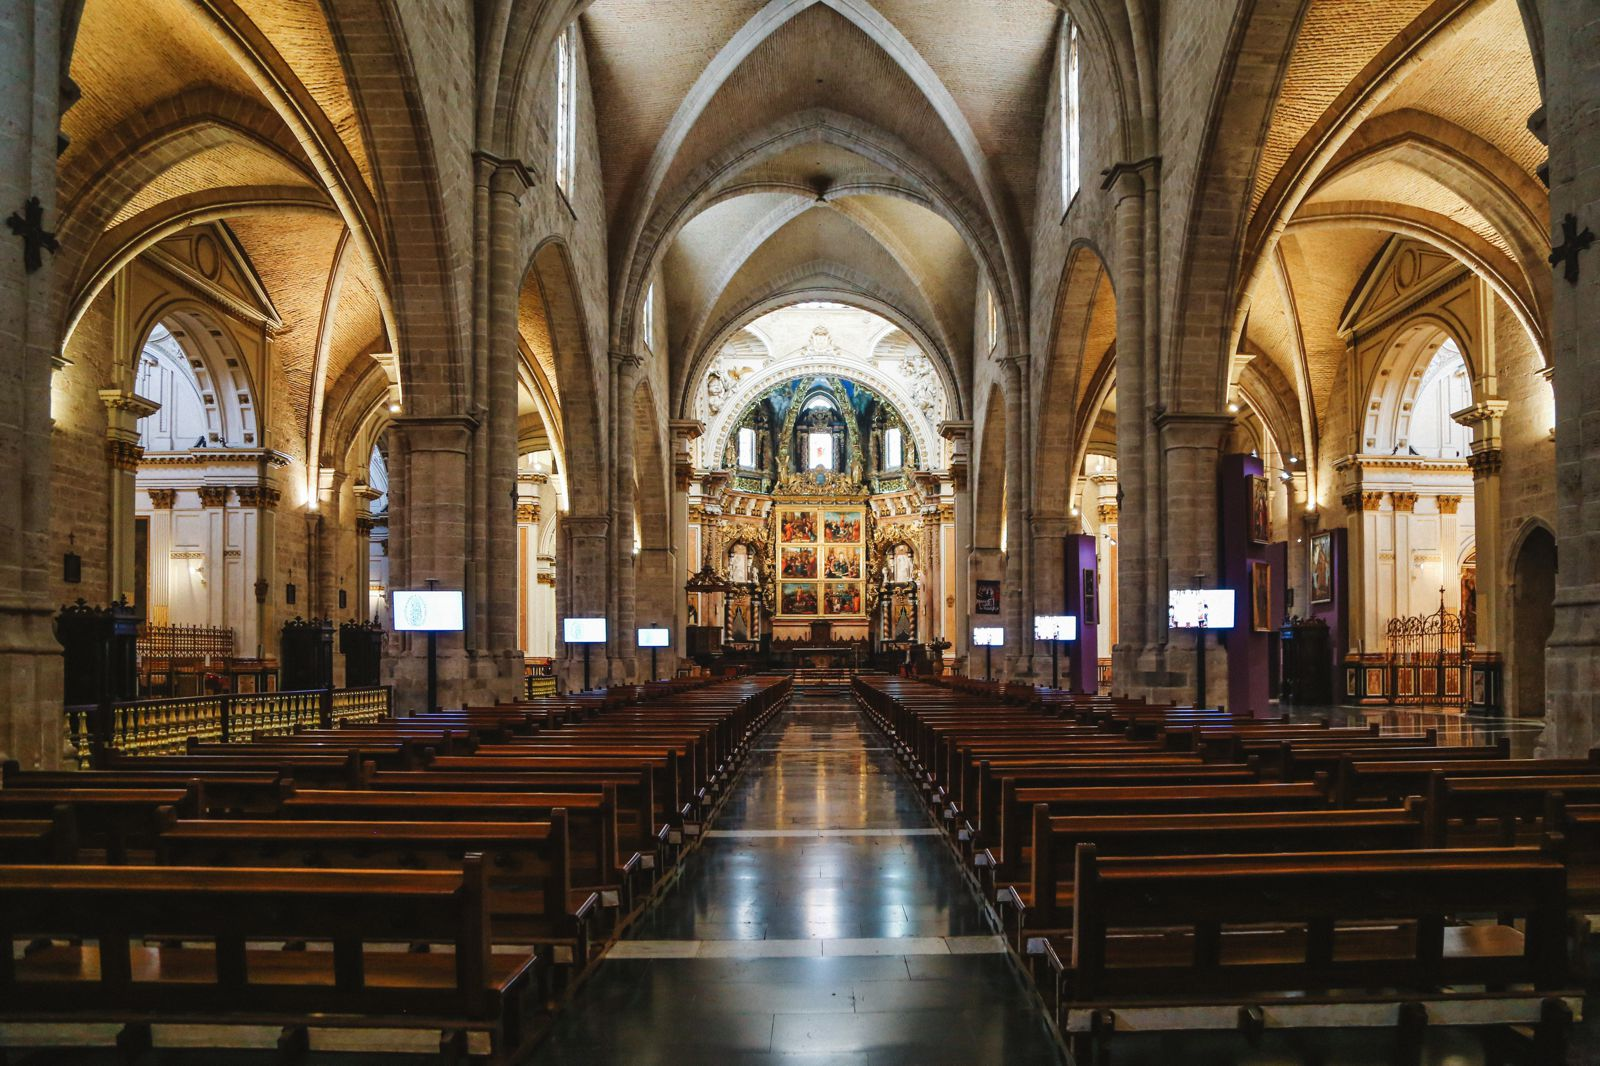 20 Unique And Amazing Experiences To Have In Valencia, Spain (16)